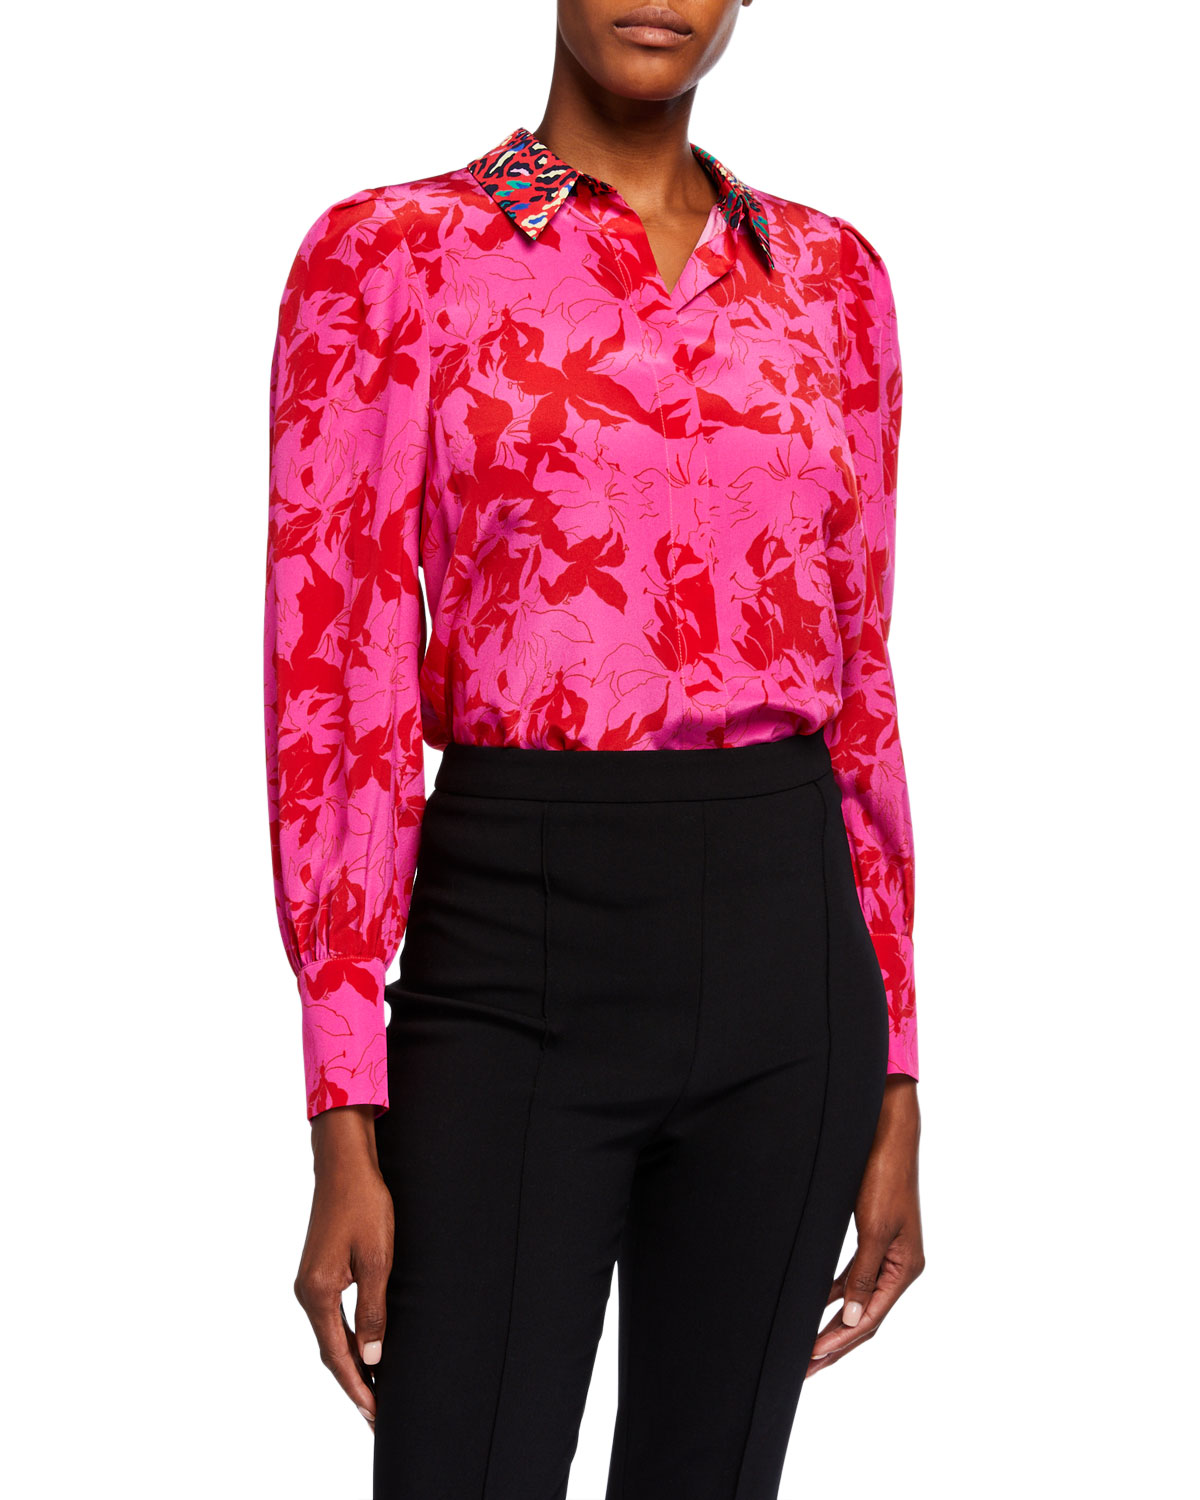 Tanya Taylor Tops DOMINIQUE PRINTED BUTTON-DOWN TOP